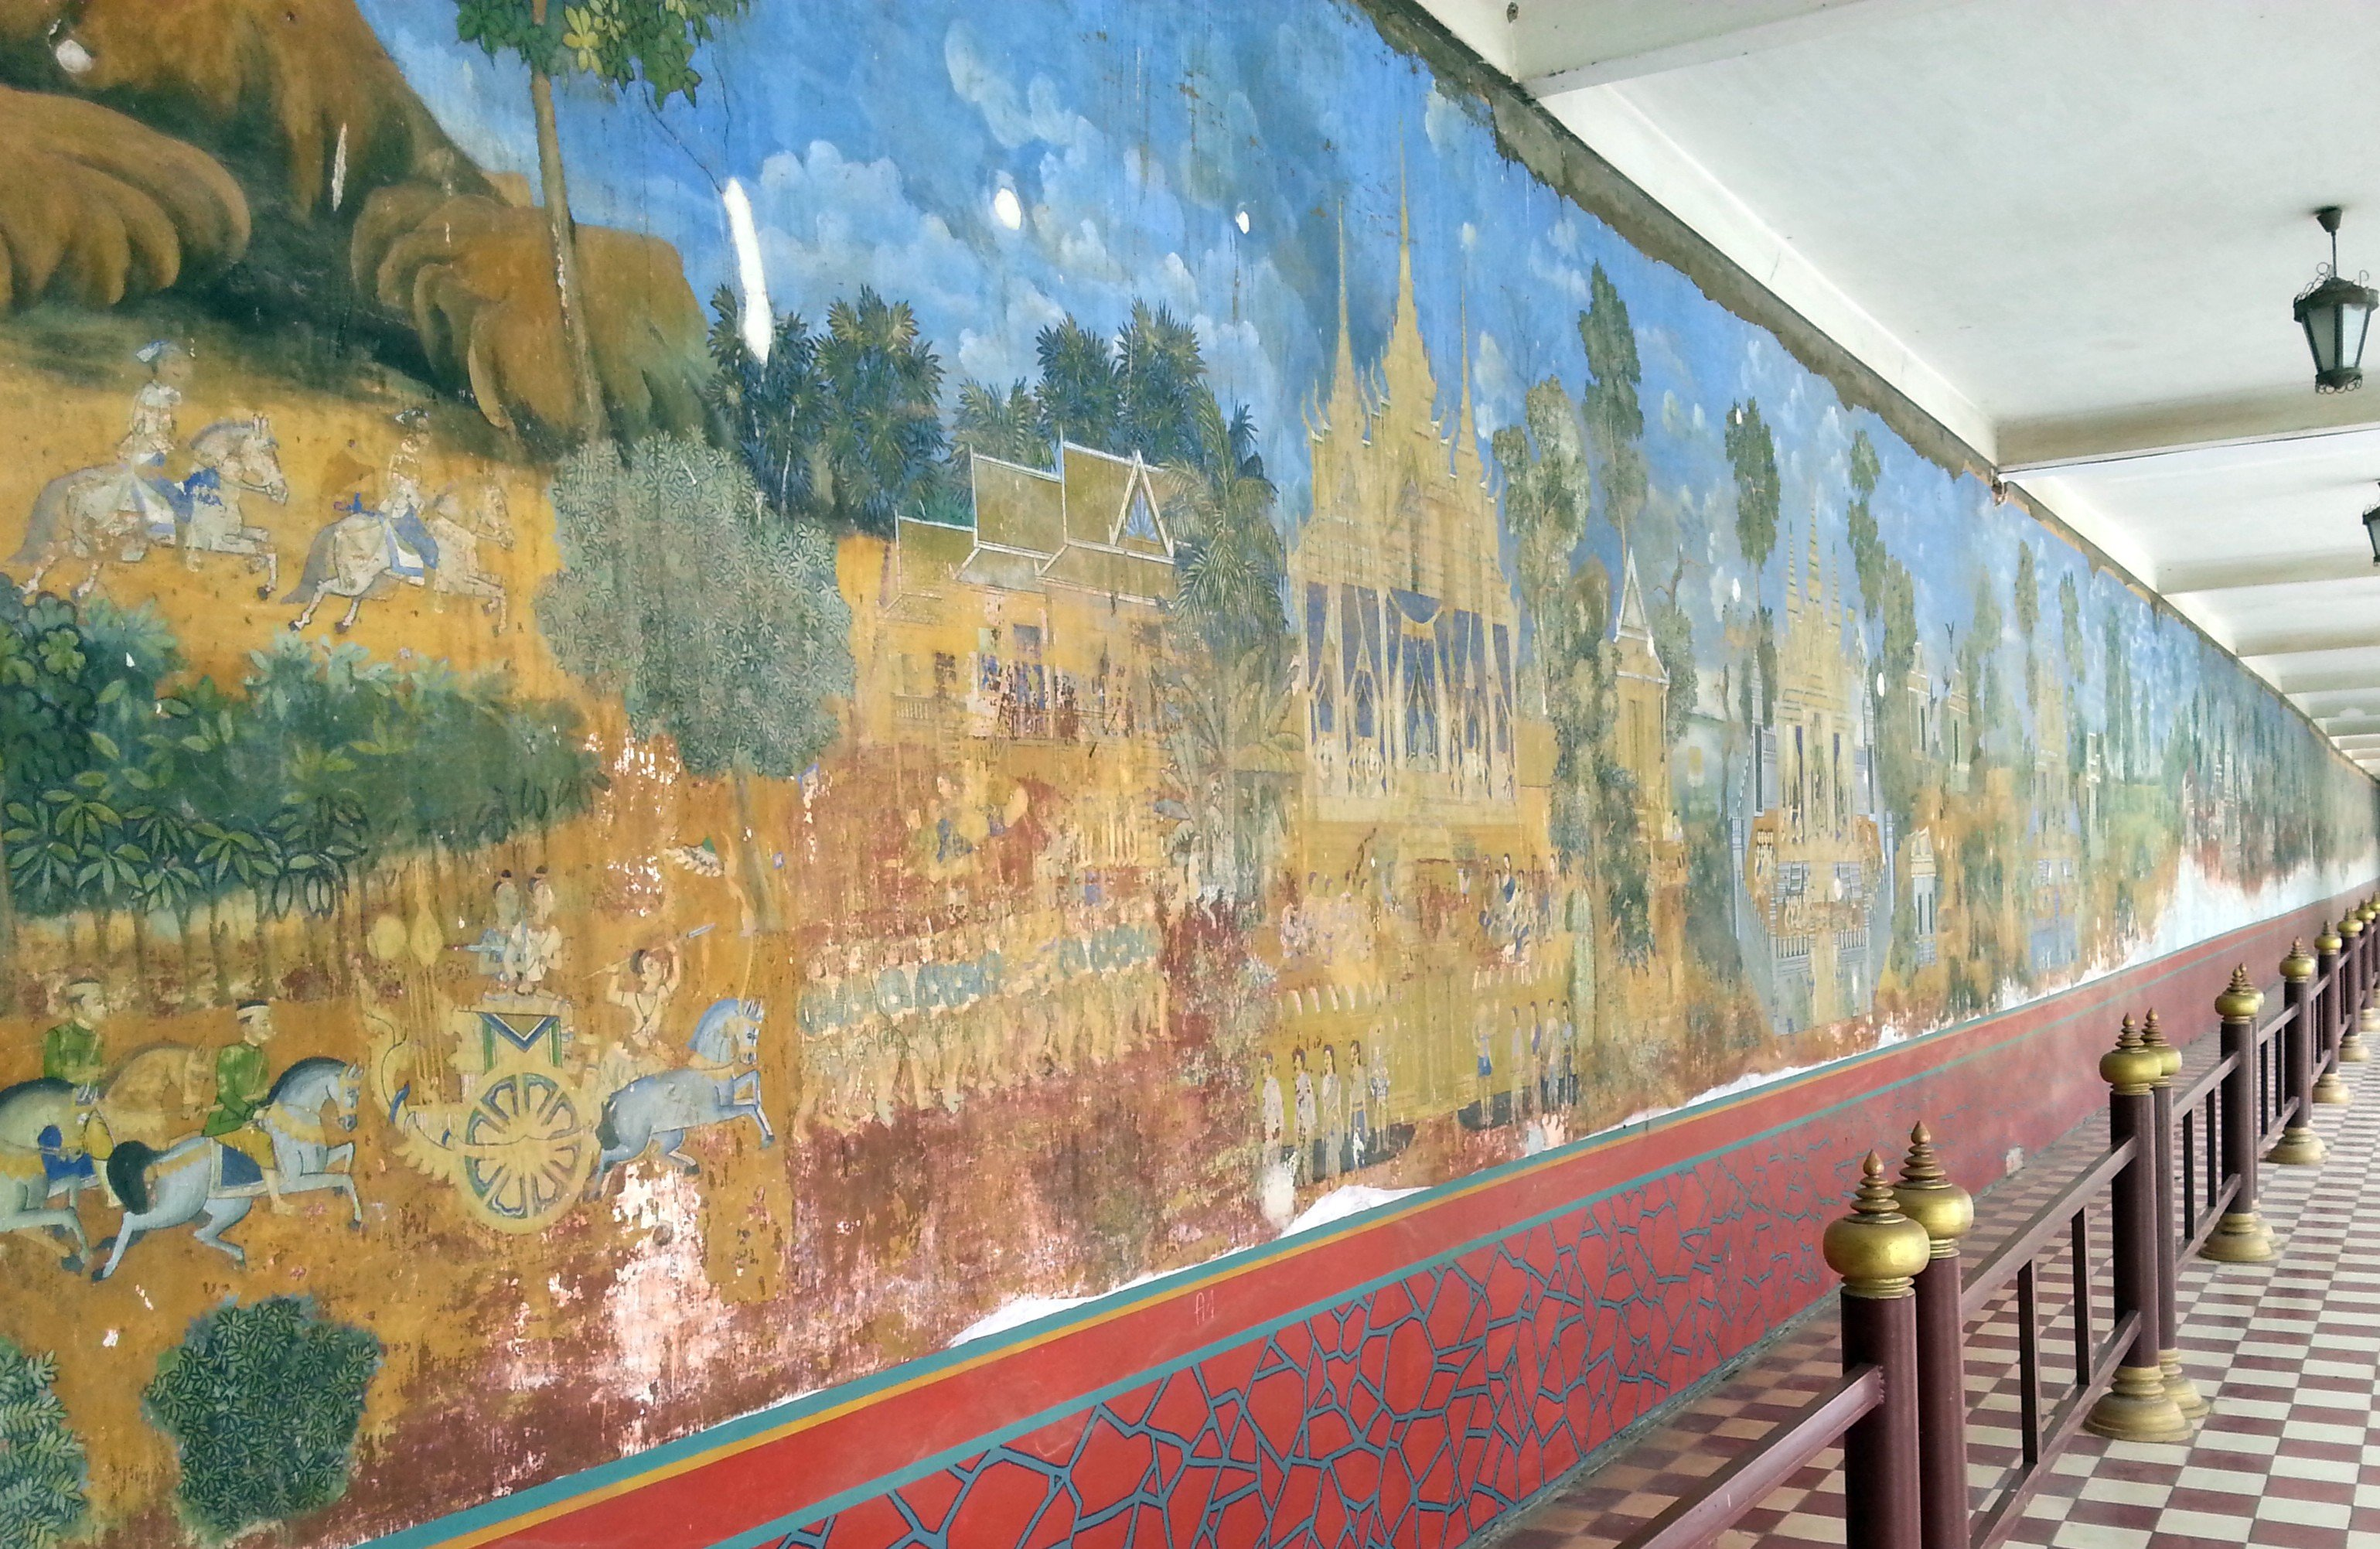 Mural of the Reamker on the walls around the Silver Pagoda compound